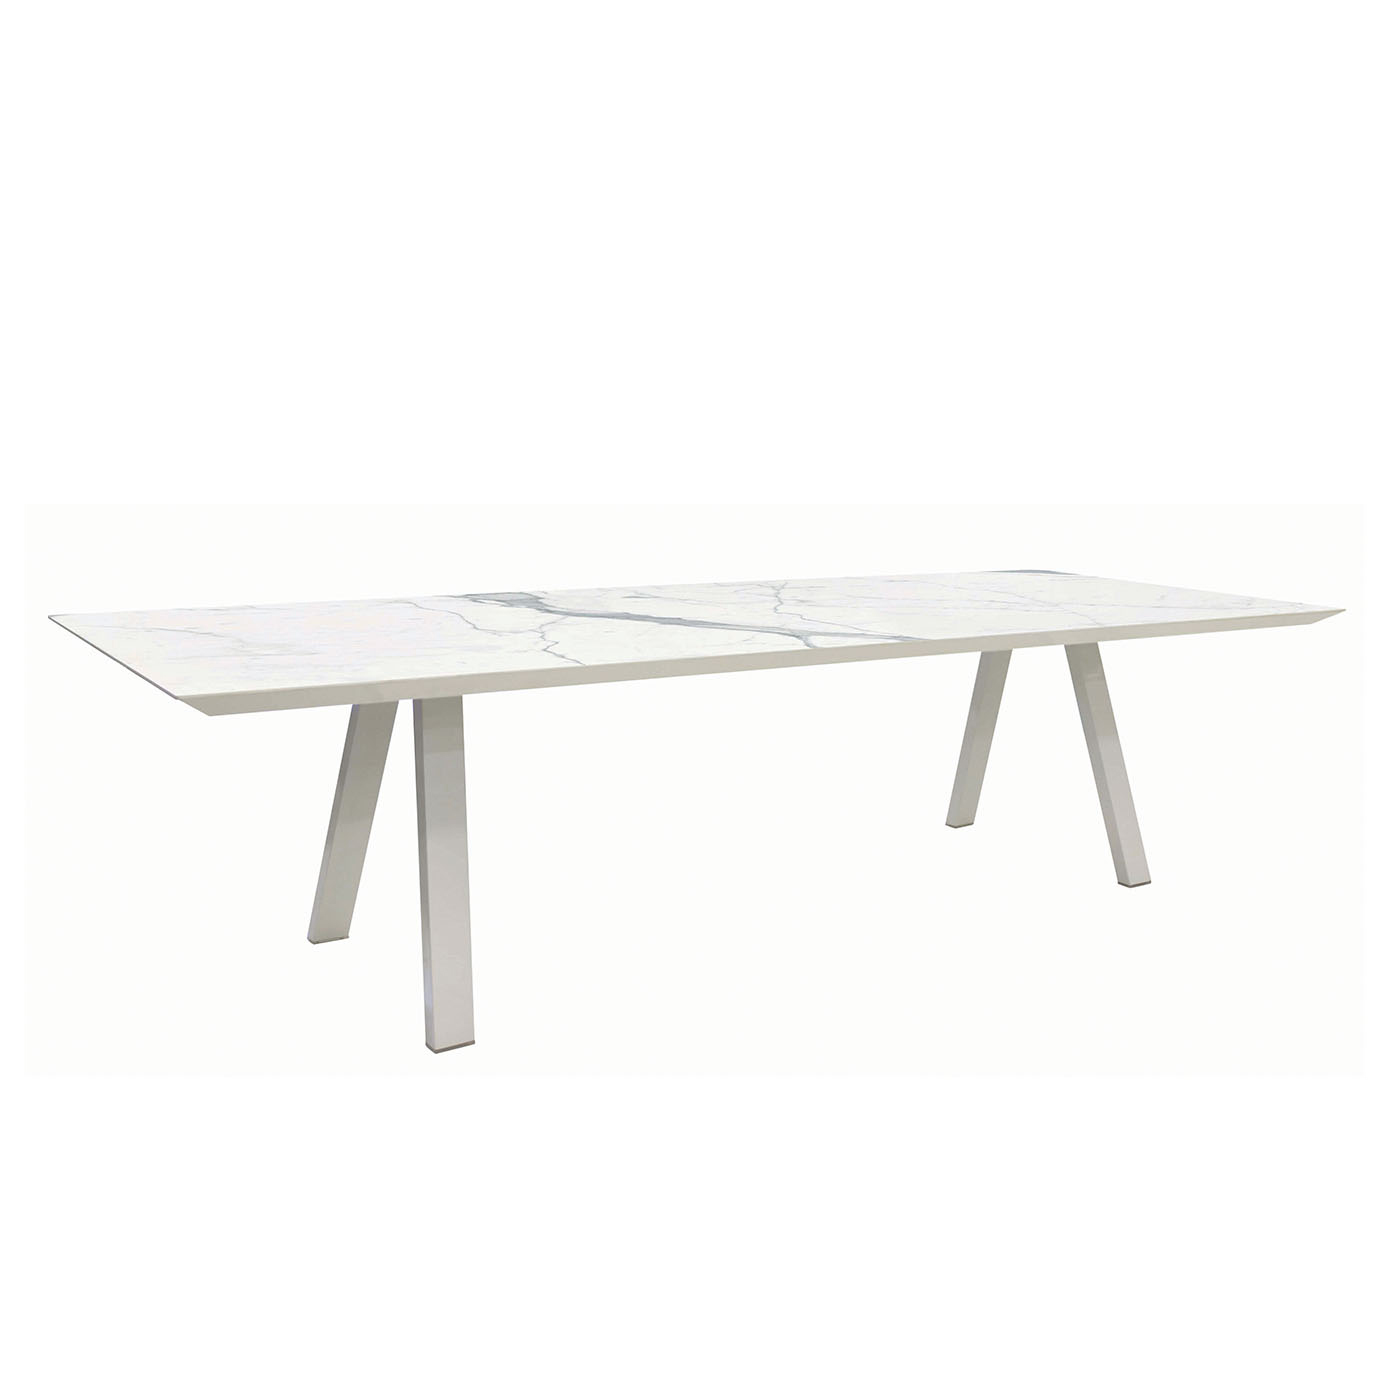 Luxor-3m-Outdoor-Dining-Table-In-White-Side-View